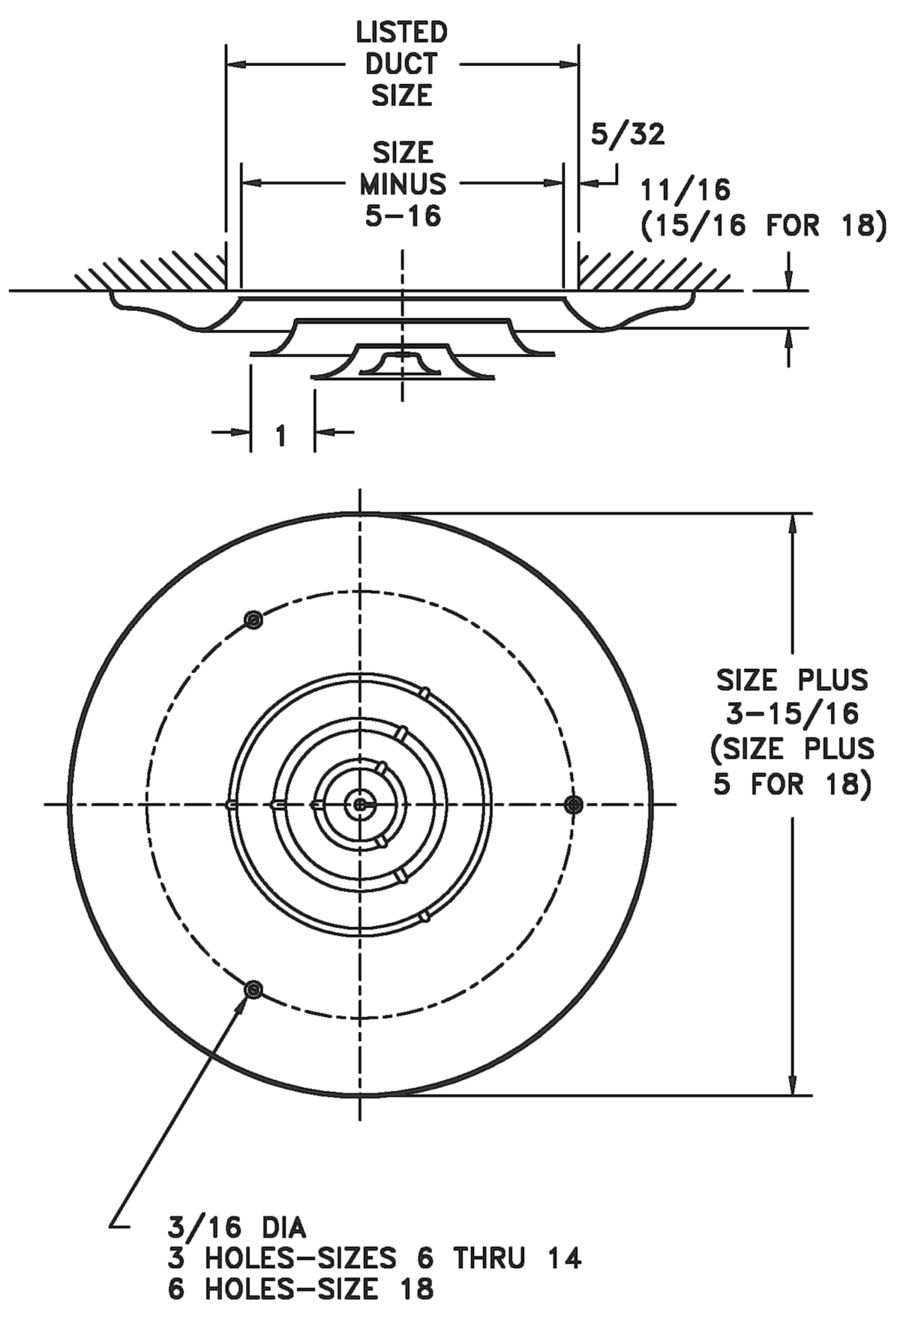 16 Steel Round Diffuser Hart Cooley Hvac Duct Drawing Images Dimensional